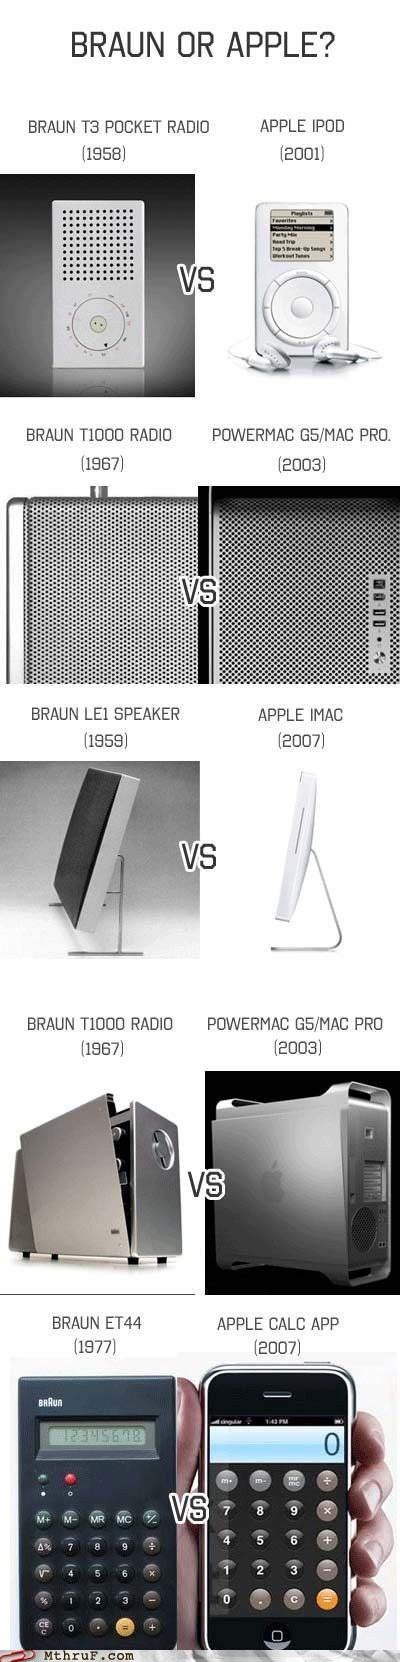 apple apple vs braun braun braun vs apple calculator iphone ipod le1 mac - 6563205376